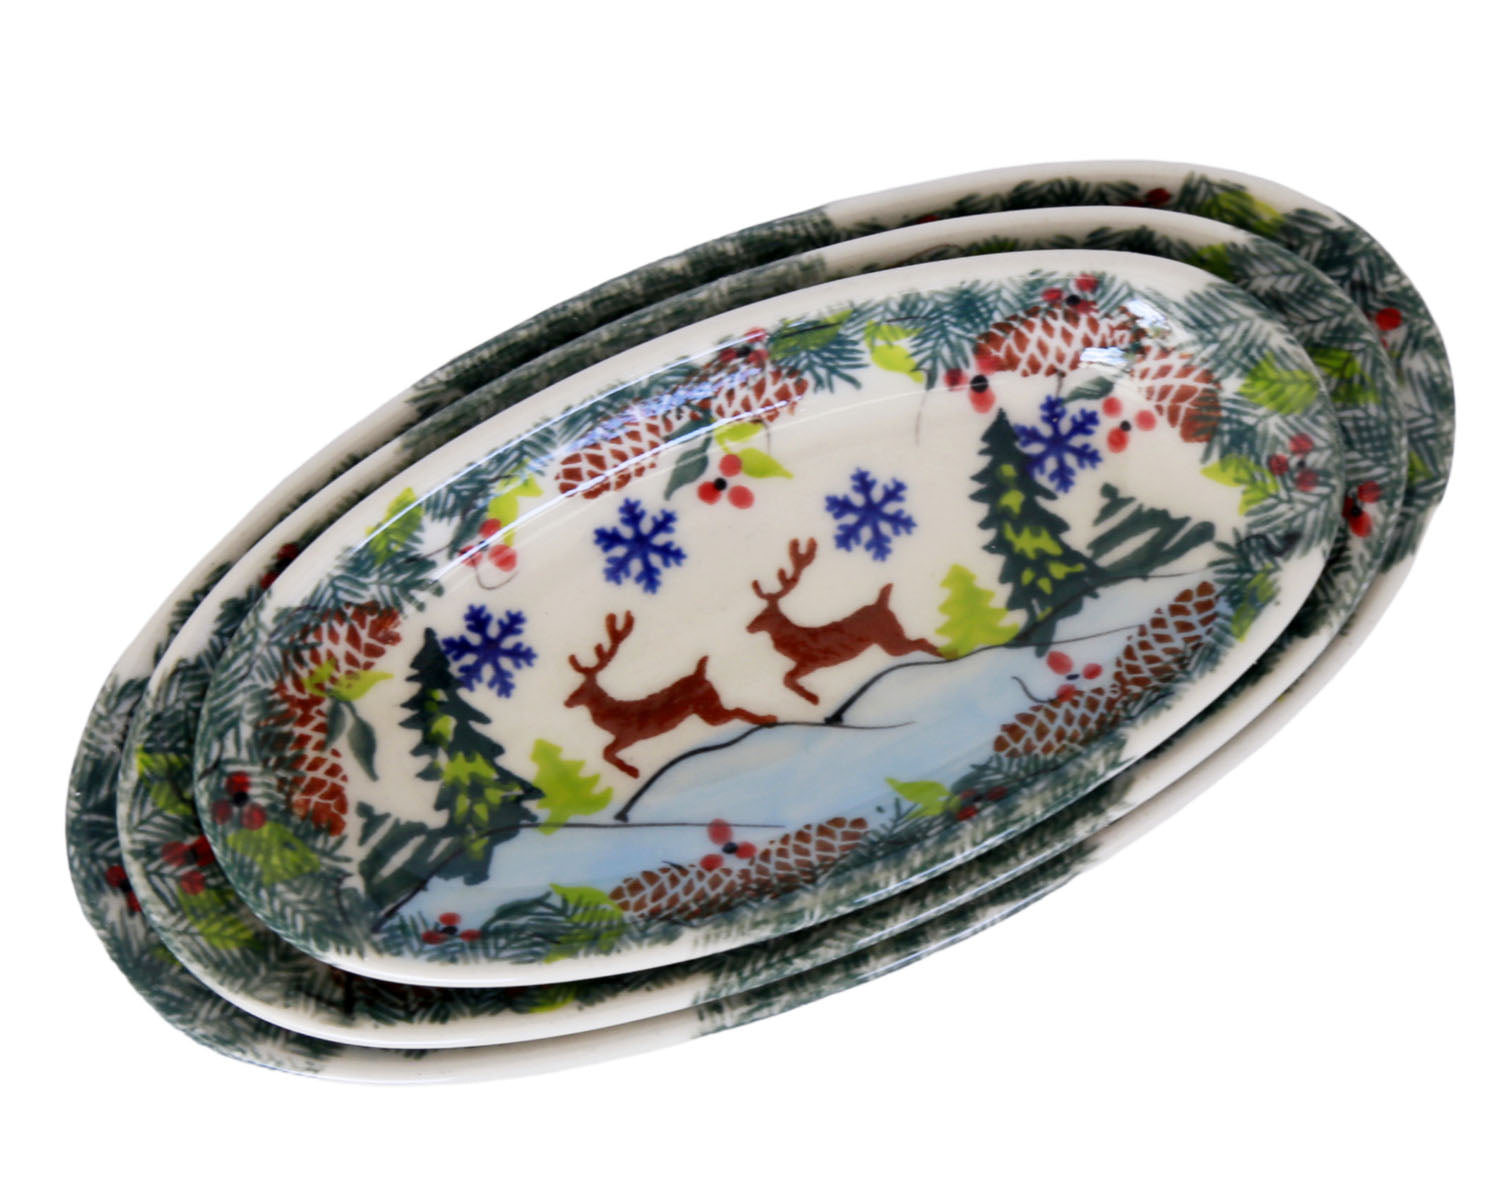 Unikat Nesting Dishes